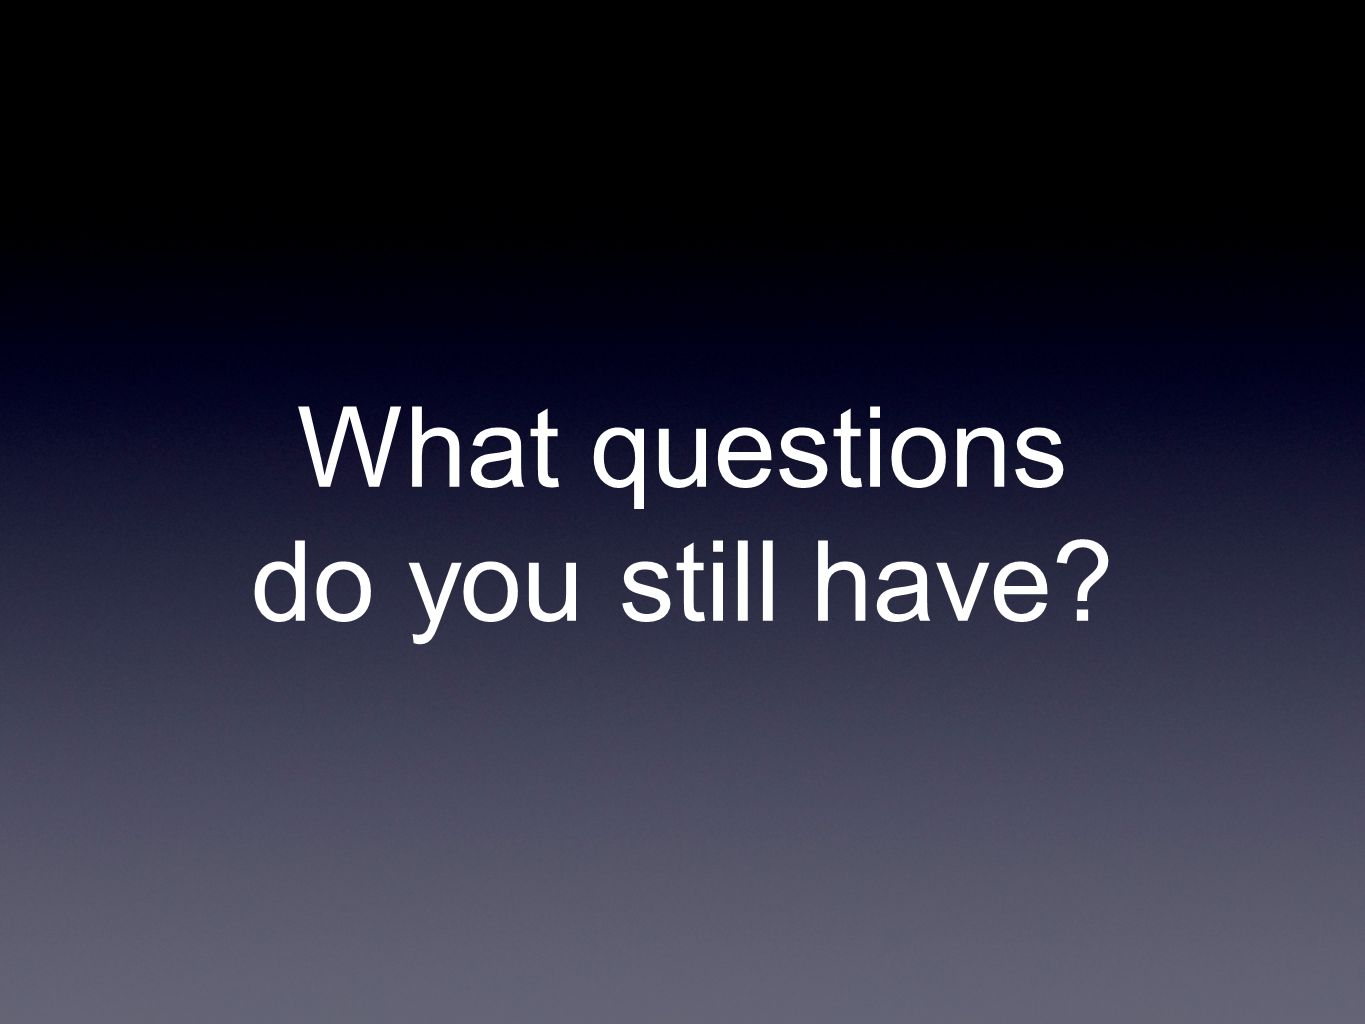 What questions do you still have?